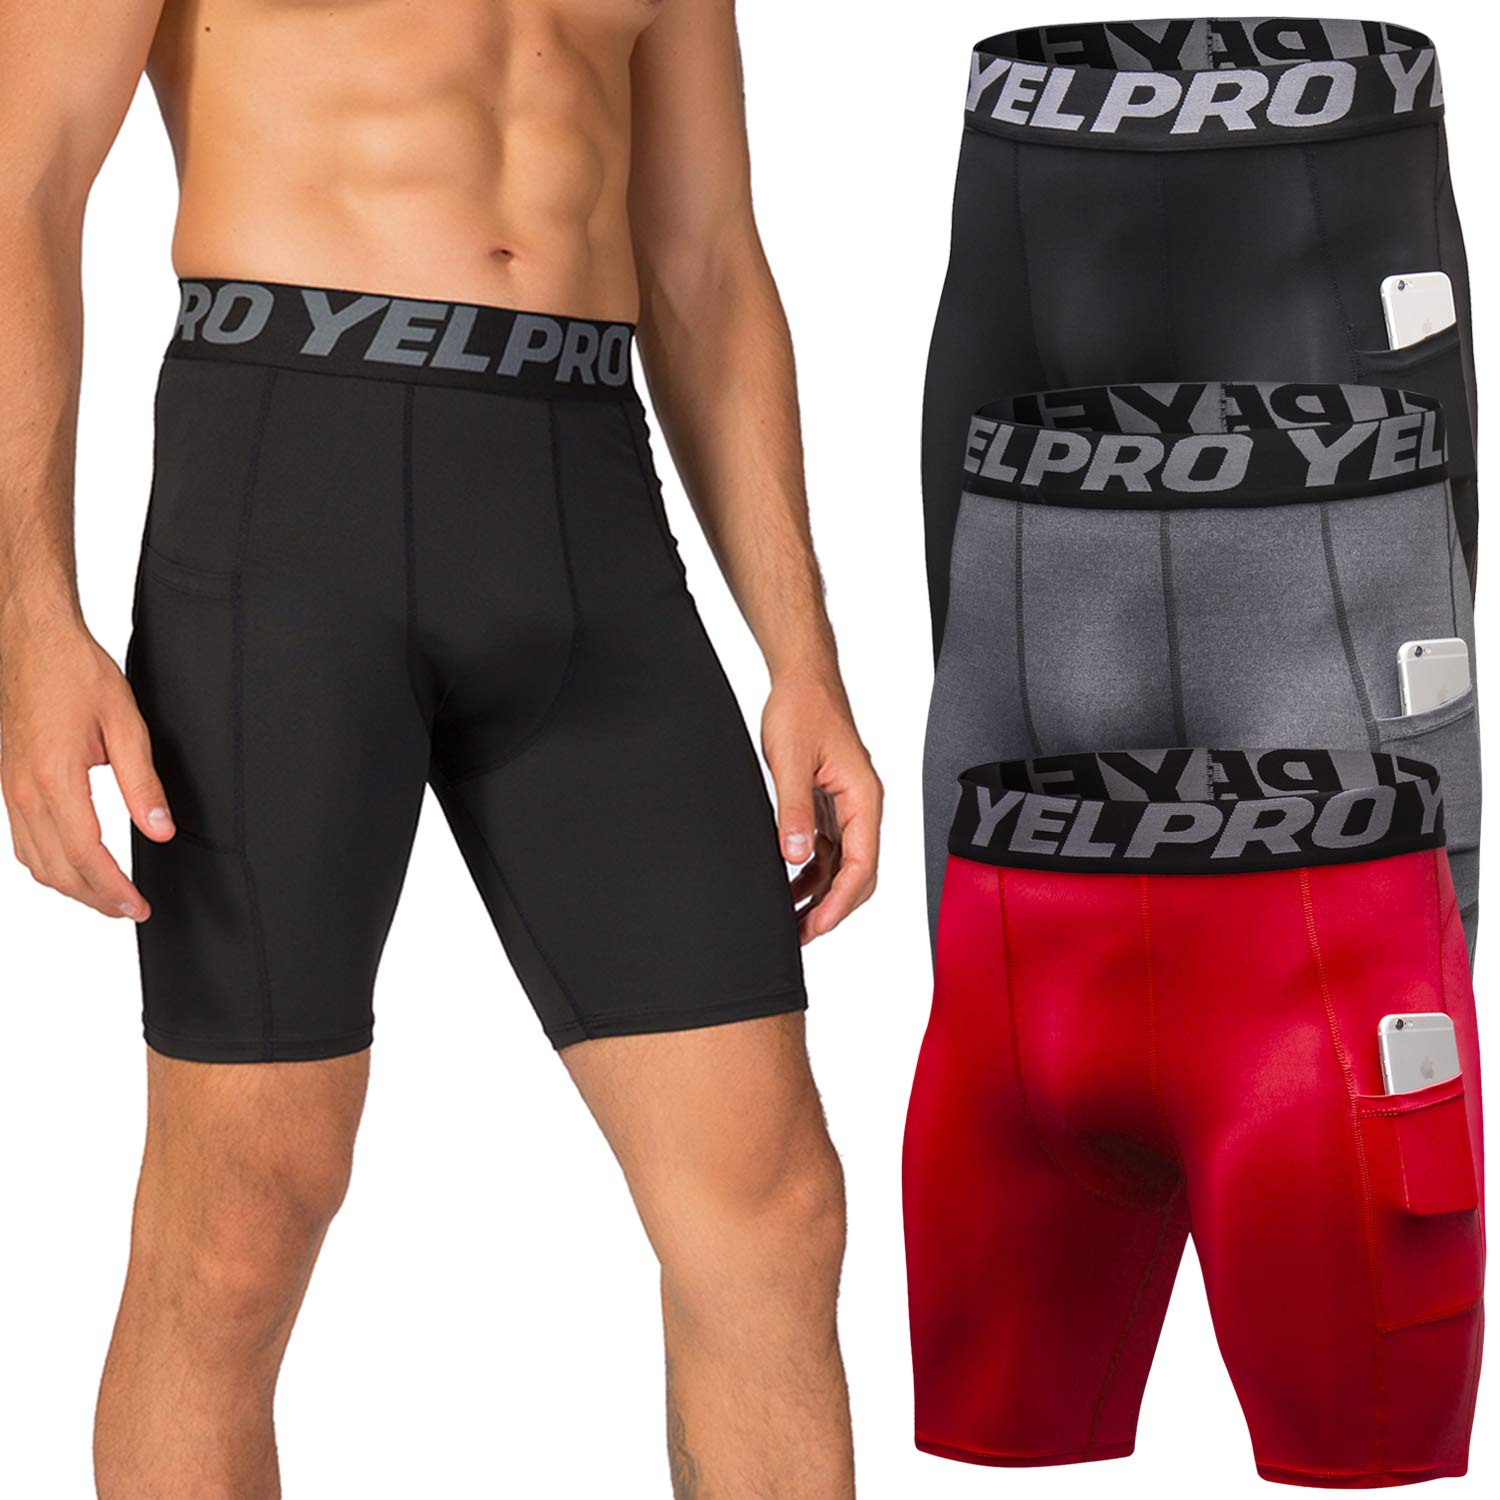 Lavento Men's Compression Shorts Sports Baselayer Cool Dry Tights (3 Pack-3814 Black/Gray/Red,Medium) by Lavento